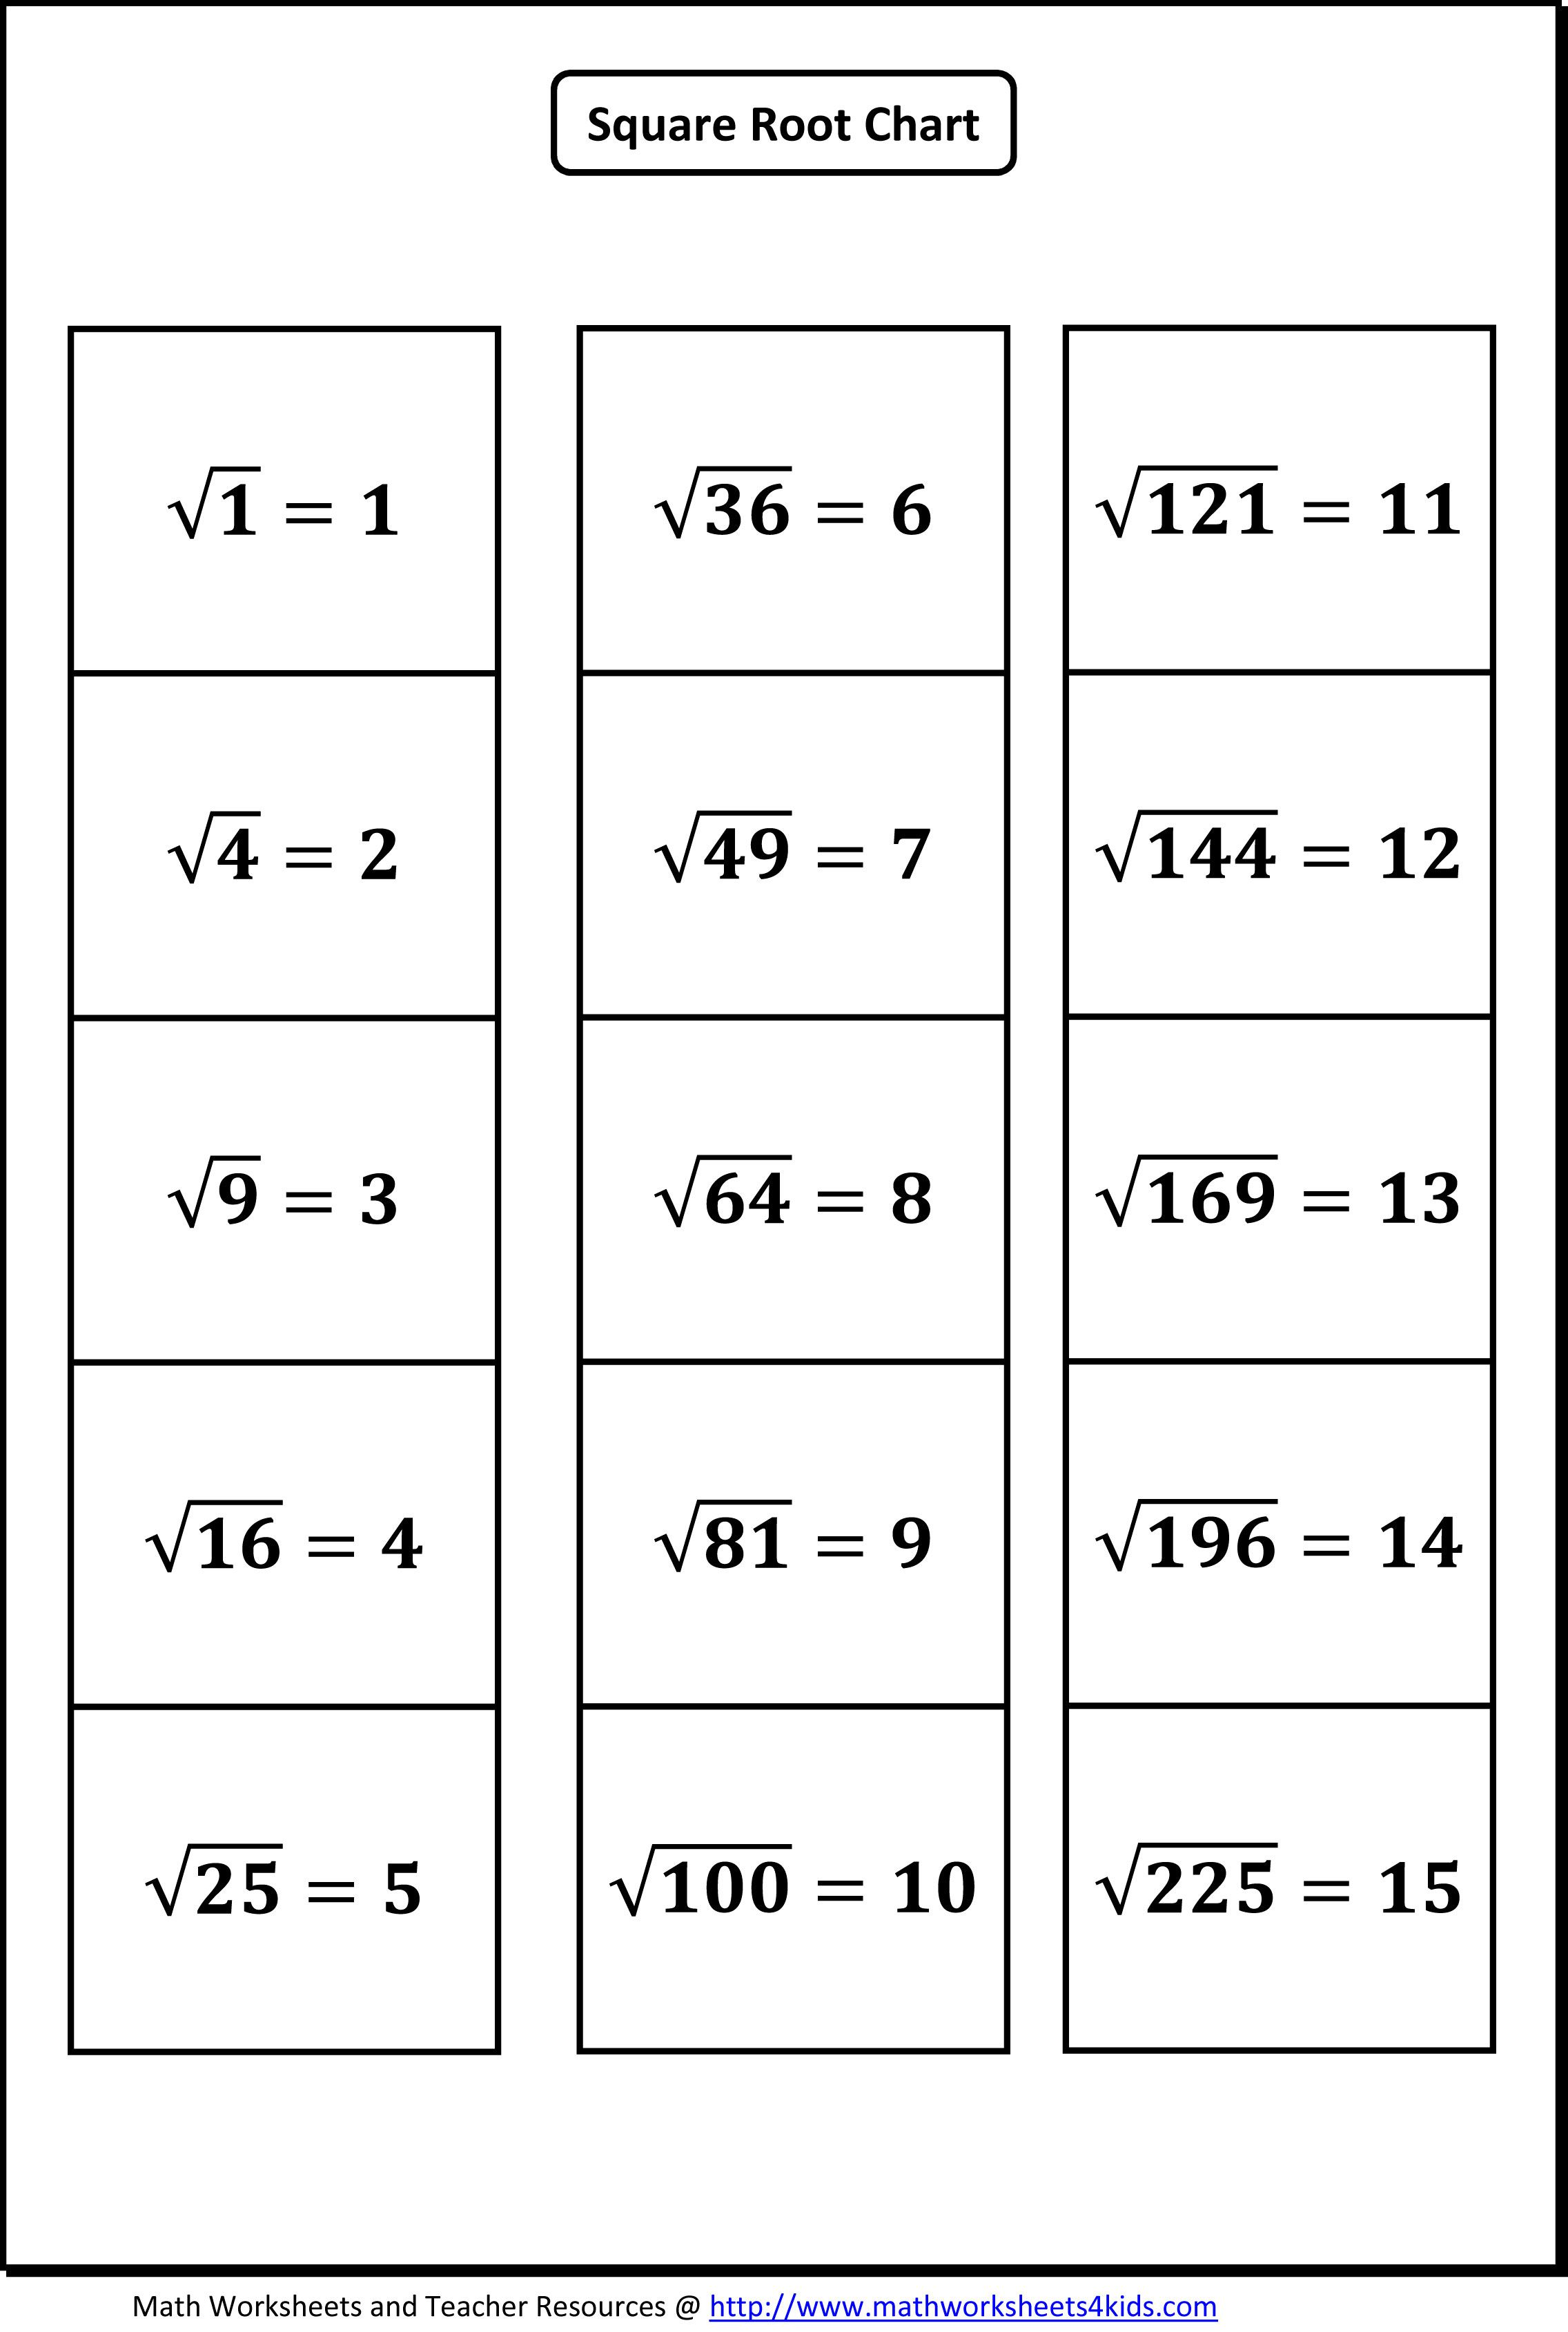 Worksheet Fractions Of A Whole Worksheet Worksheet Fun